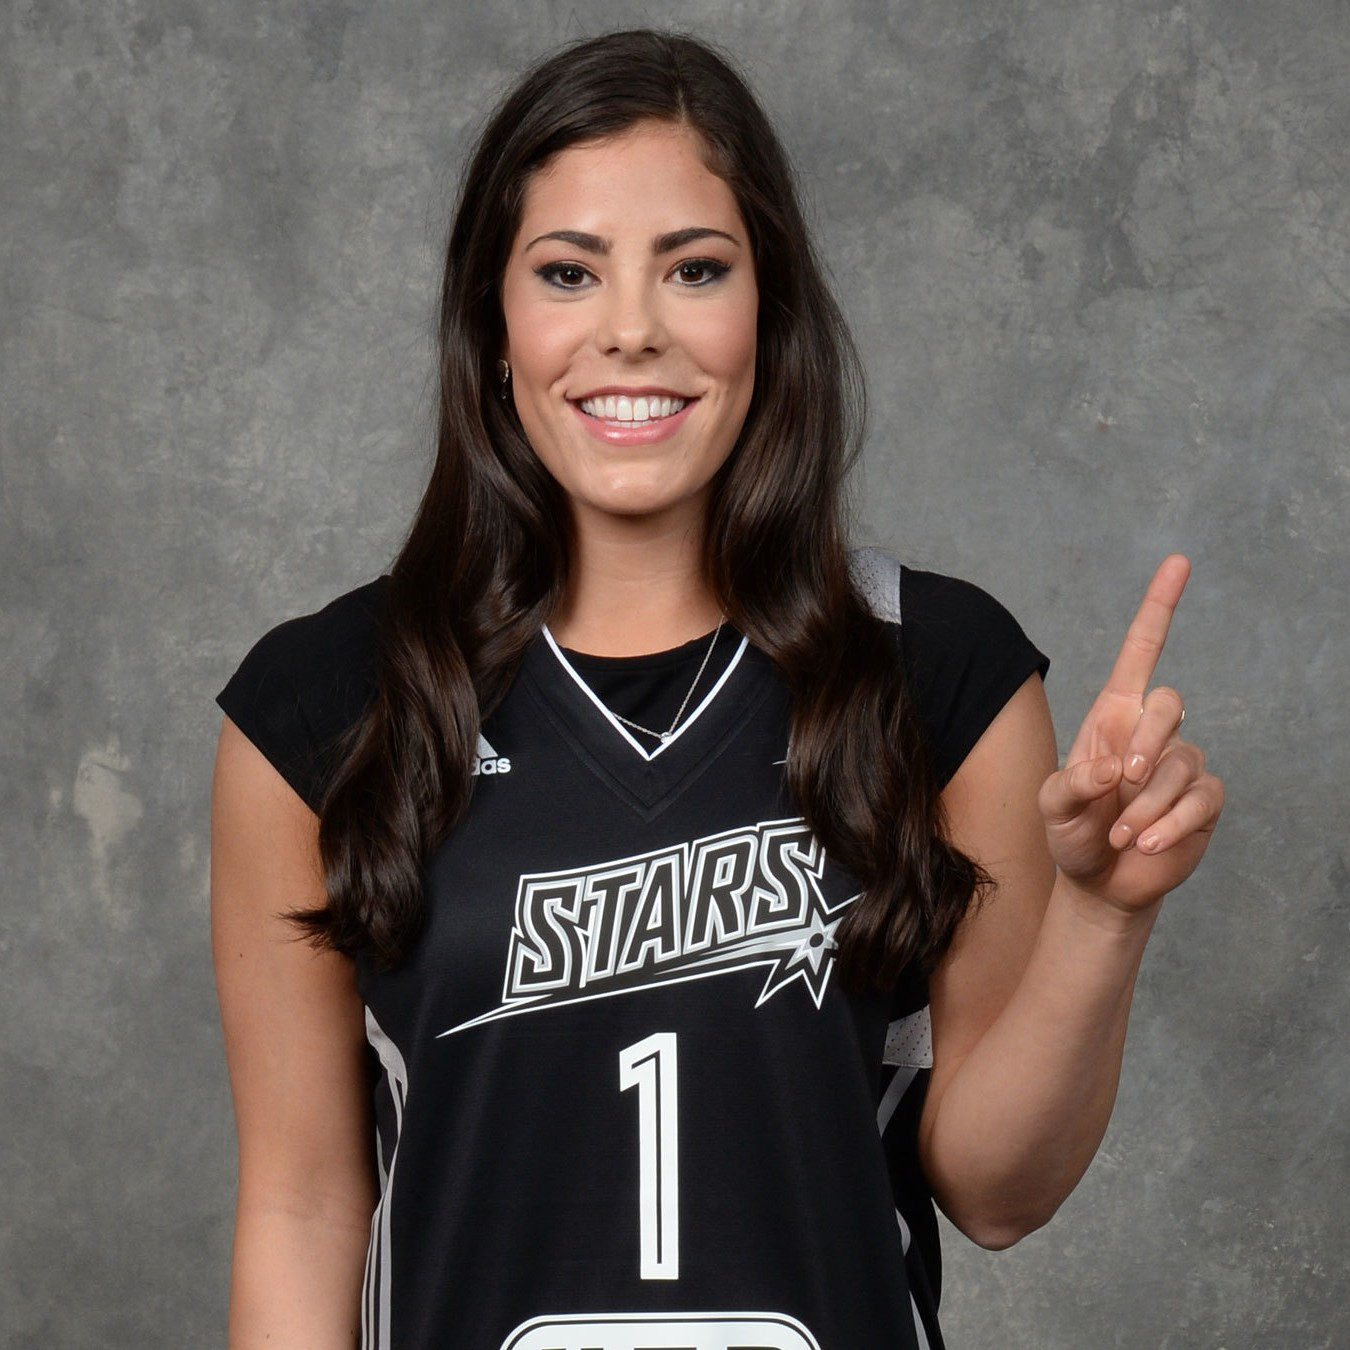 How-kelsey-plum-went-first-in-the-wnba-draft-and-got-stuck-in-limbo-1492617394.jpg?crop=0